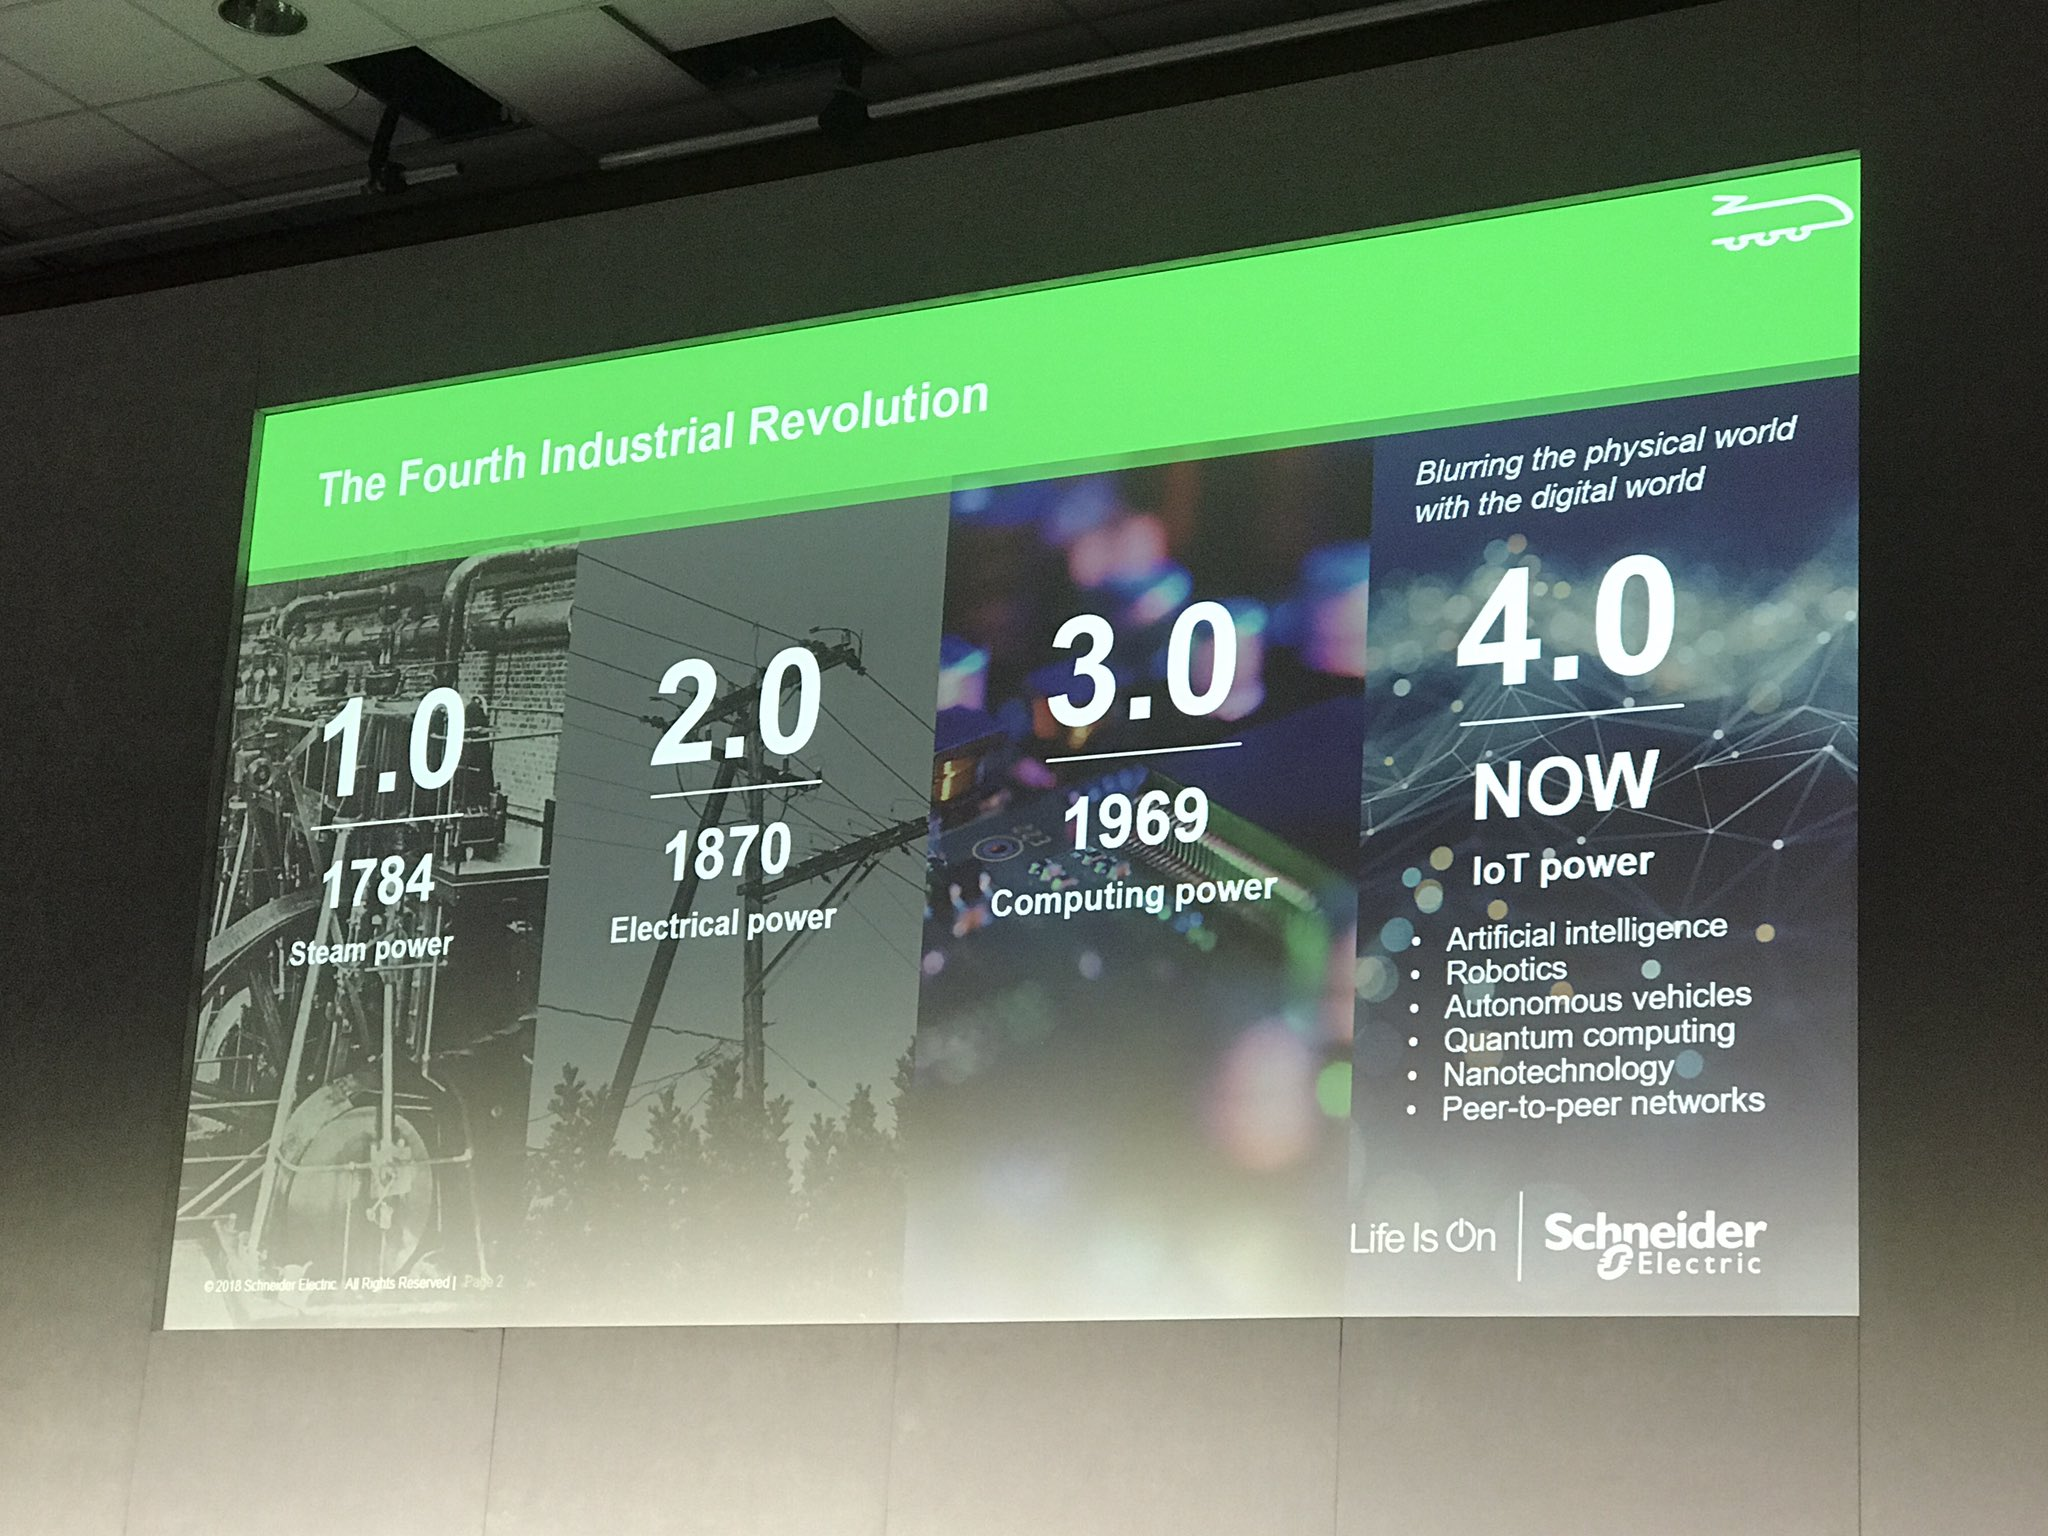 Great slide from @SchneiderElec visualising the 4.0 industry revolution with #ai #robotics #quantumcomputing #nanotech #peer2peer #RIARIC2019 https://t.co/eQWMVSaq70